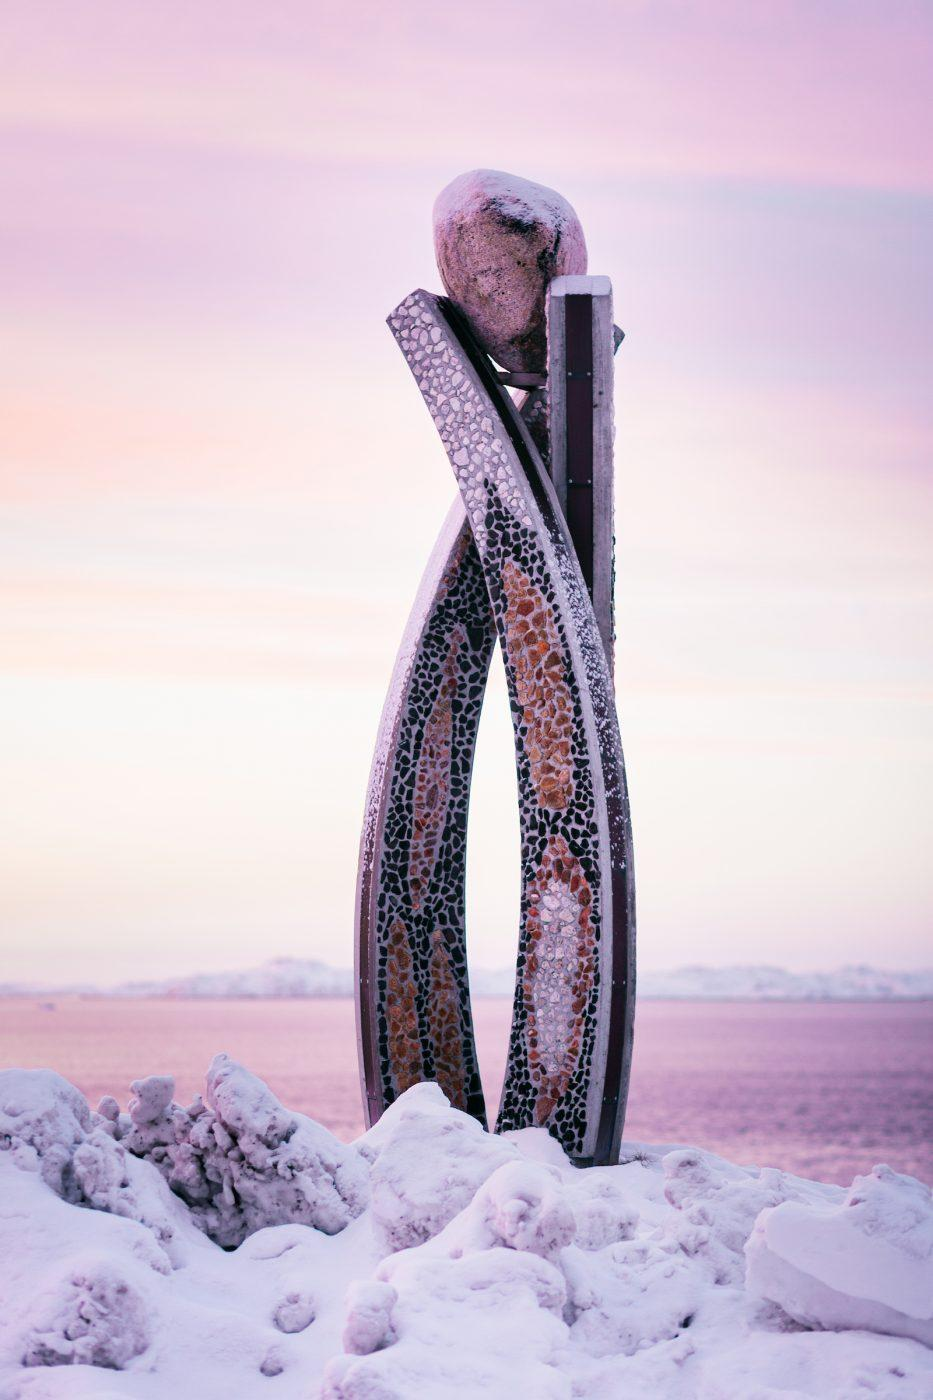 The sculpture Inussuk by Niels Motzfeldt on a winter afternoon in Nuuk in Greenland. by Rebecca Gustafsson - Visit Greenland